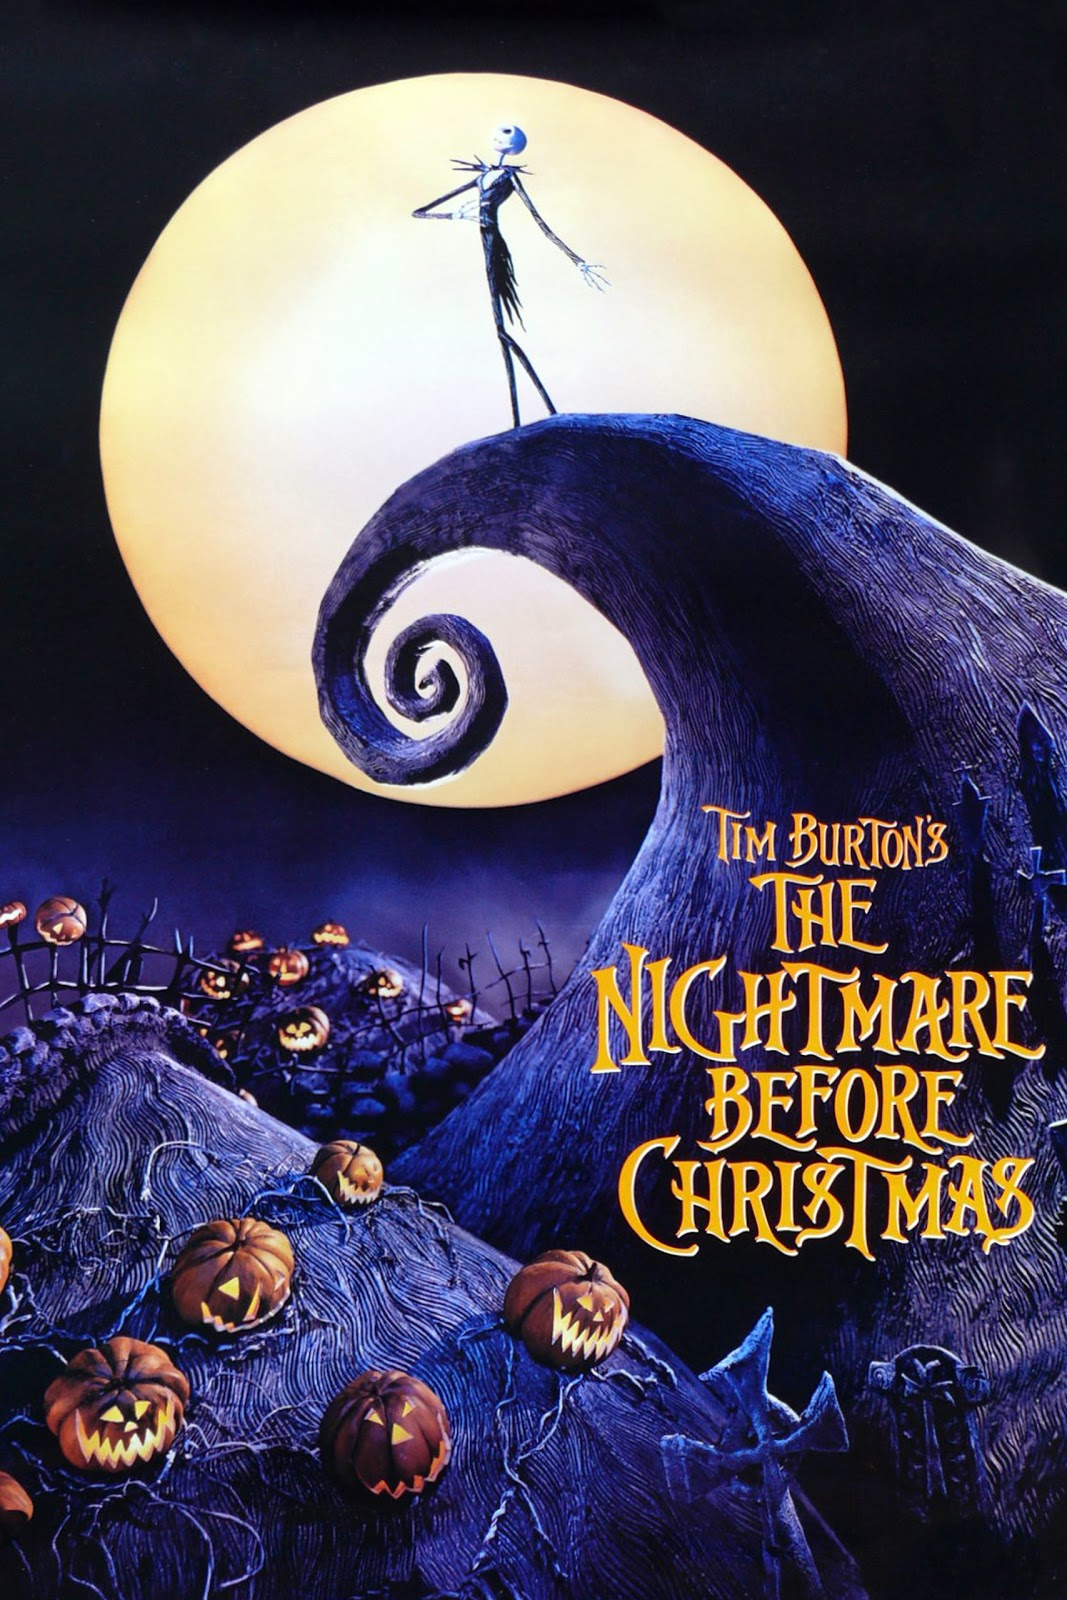 http://4.bp.blogspot.com/-IxmCETy9Q7c/TtS_YKhDk2I/AAAAAAAABtM/4wno4s6z3nA/s1600/The_Nightmare_Before_Christmas_iphone+wallpaper_1.jpg